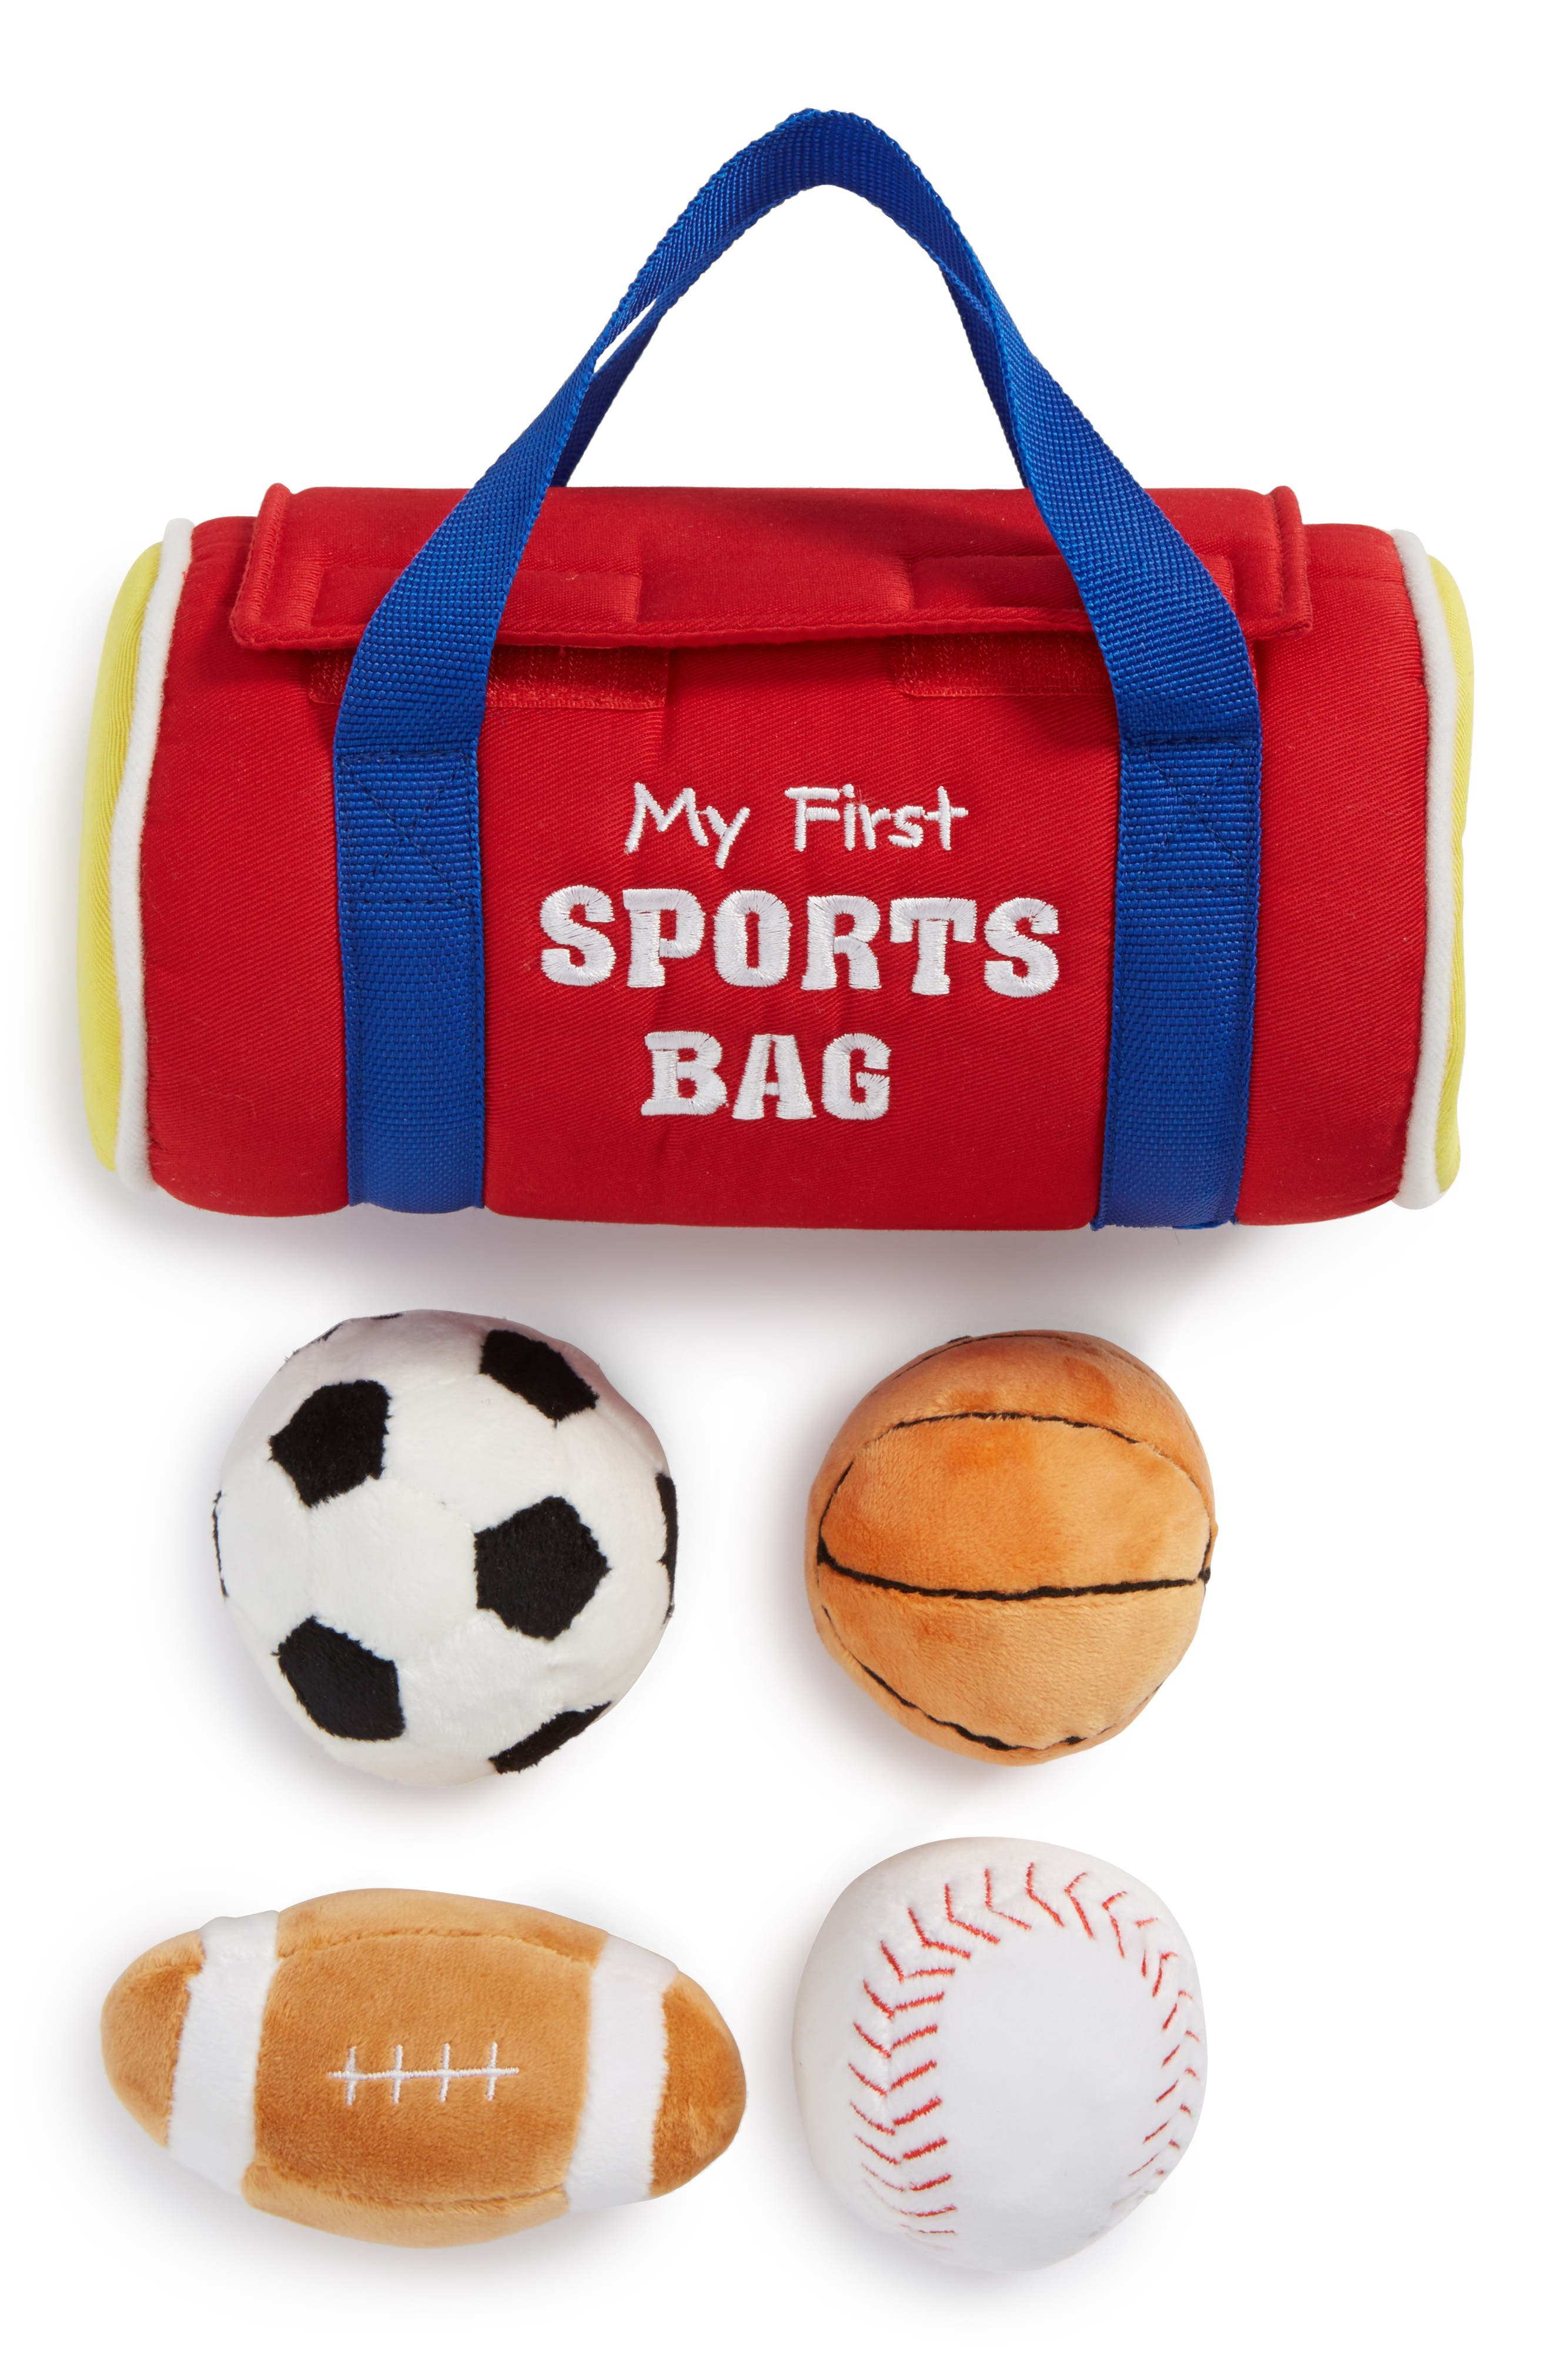 GUND, Baby Gund 'My First Sports Bag' Play Set, Alternate thumbnail 2, color, RED